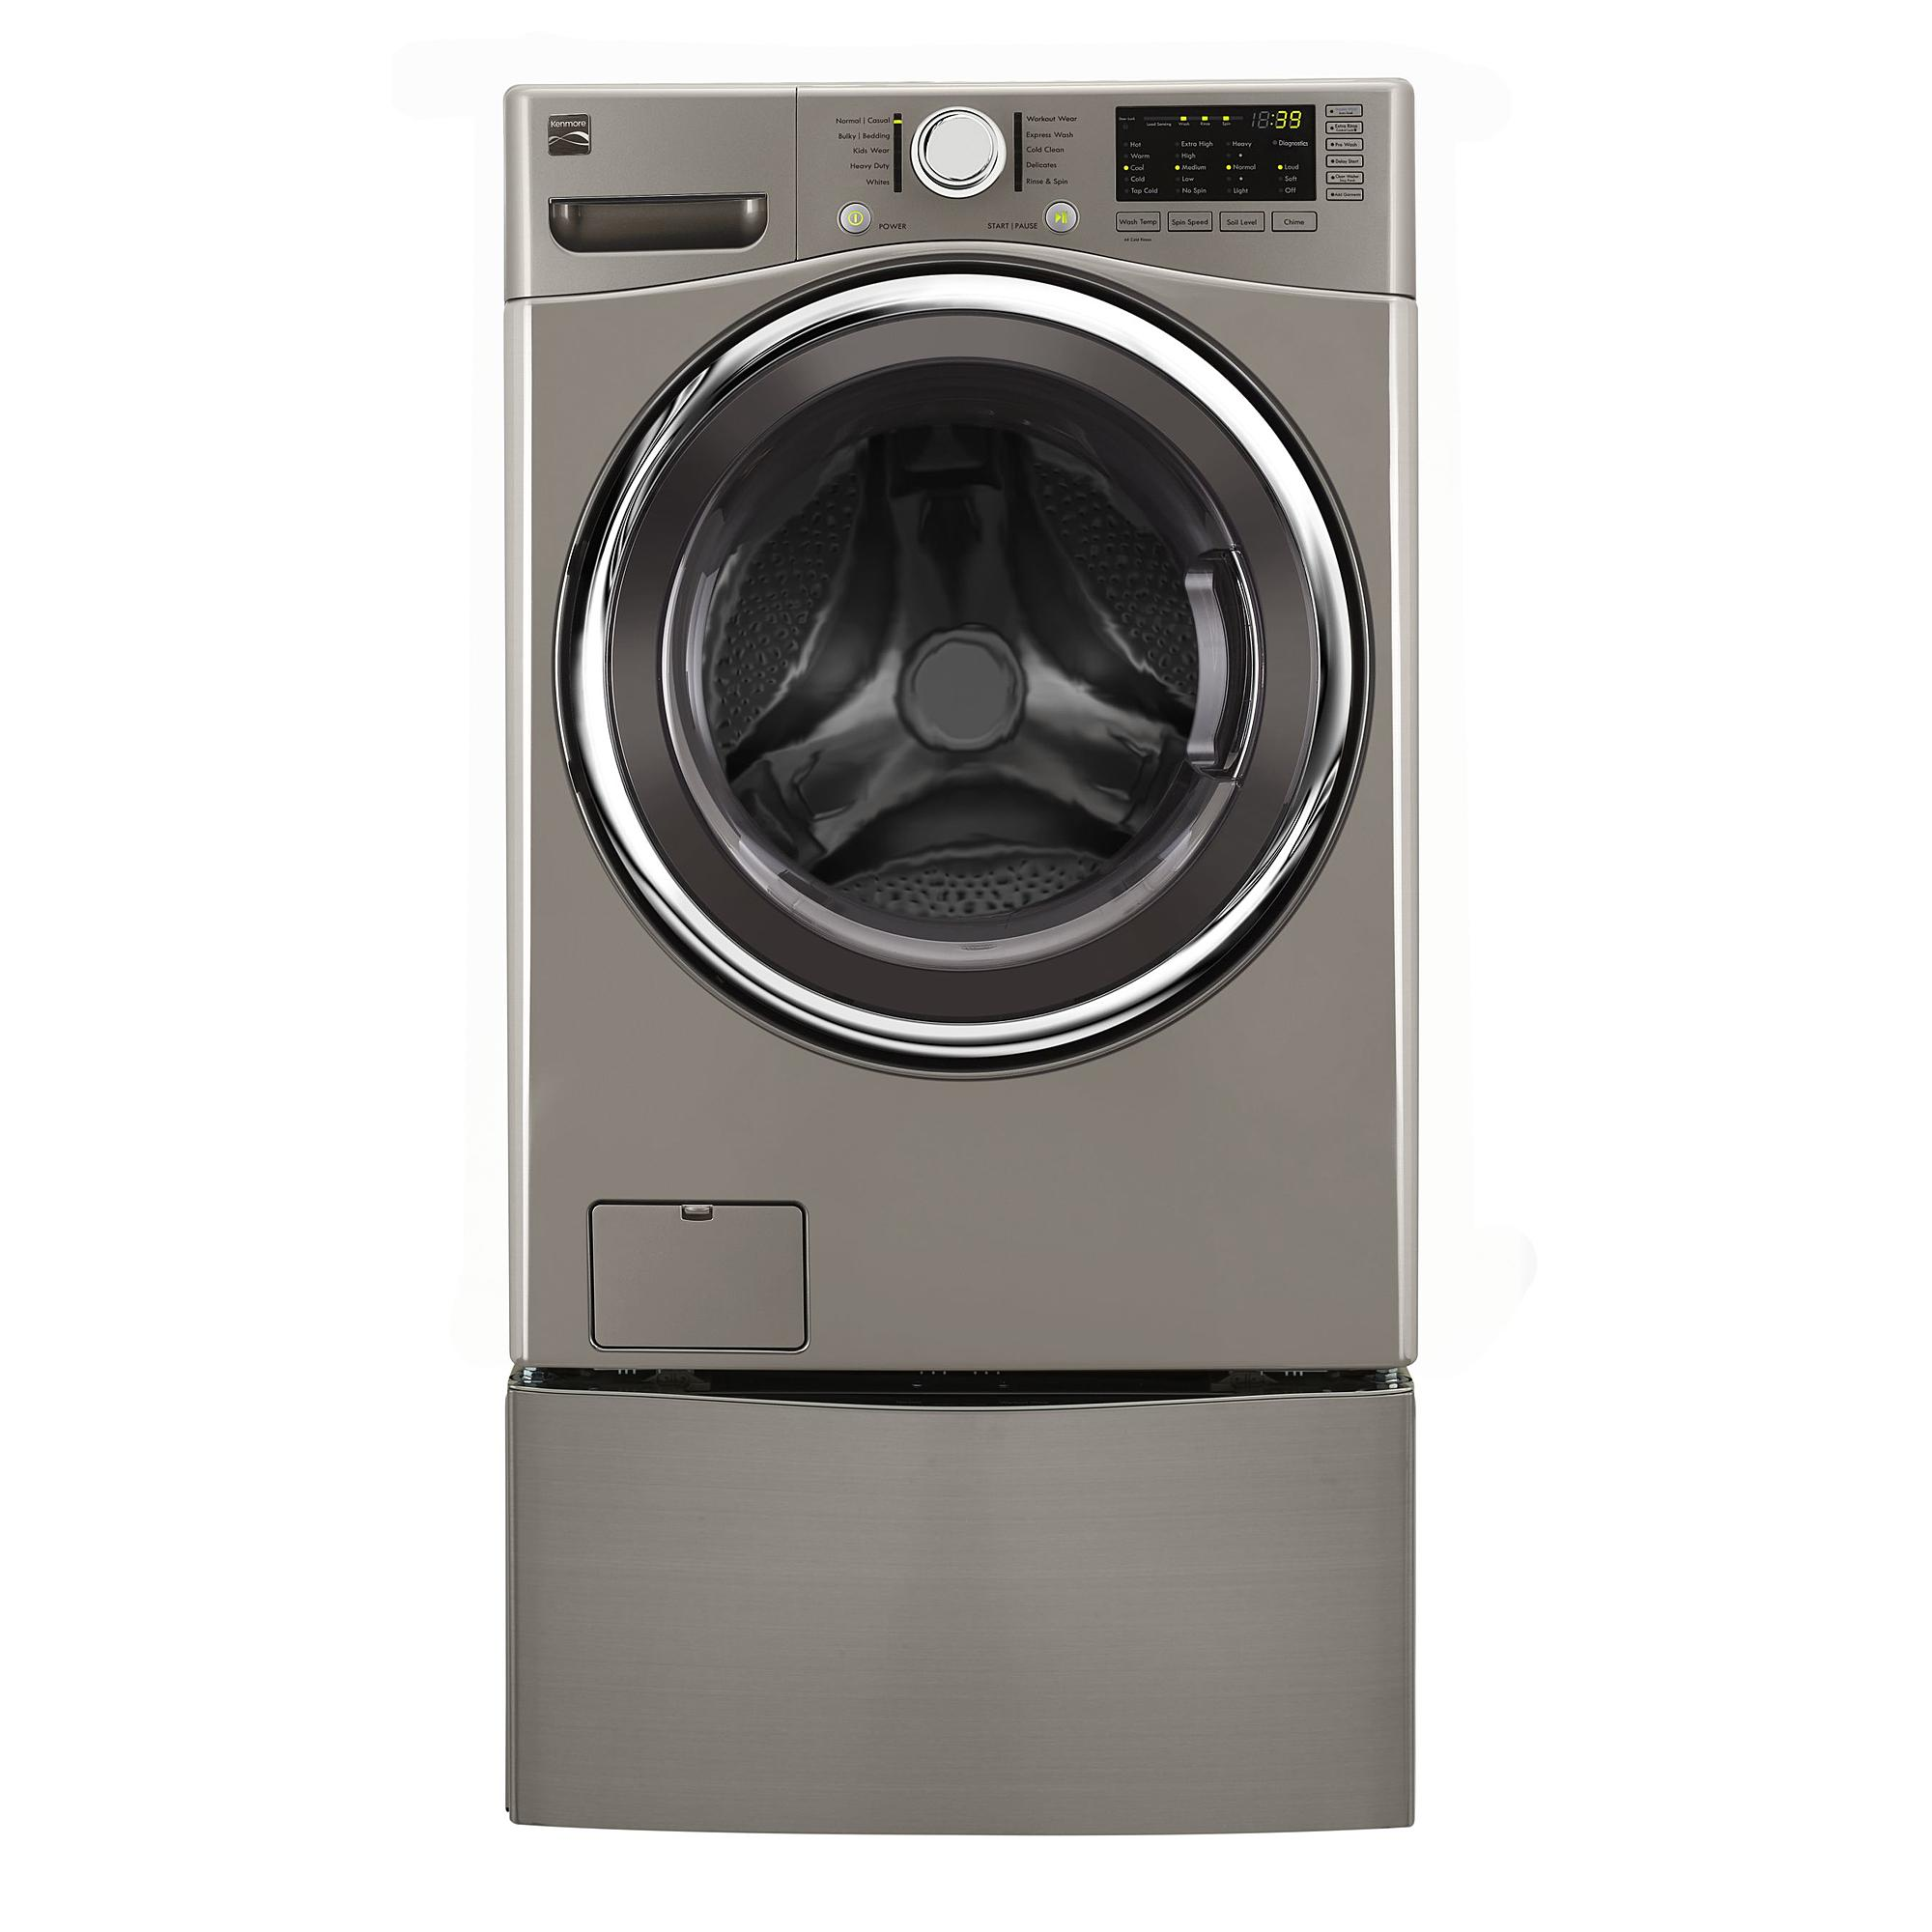 Washer repair guides and videos